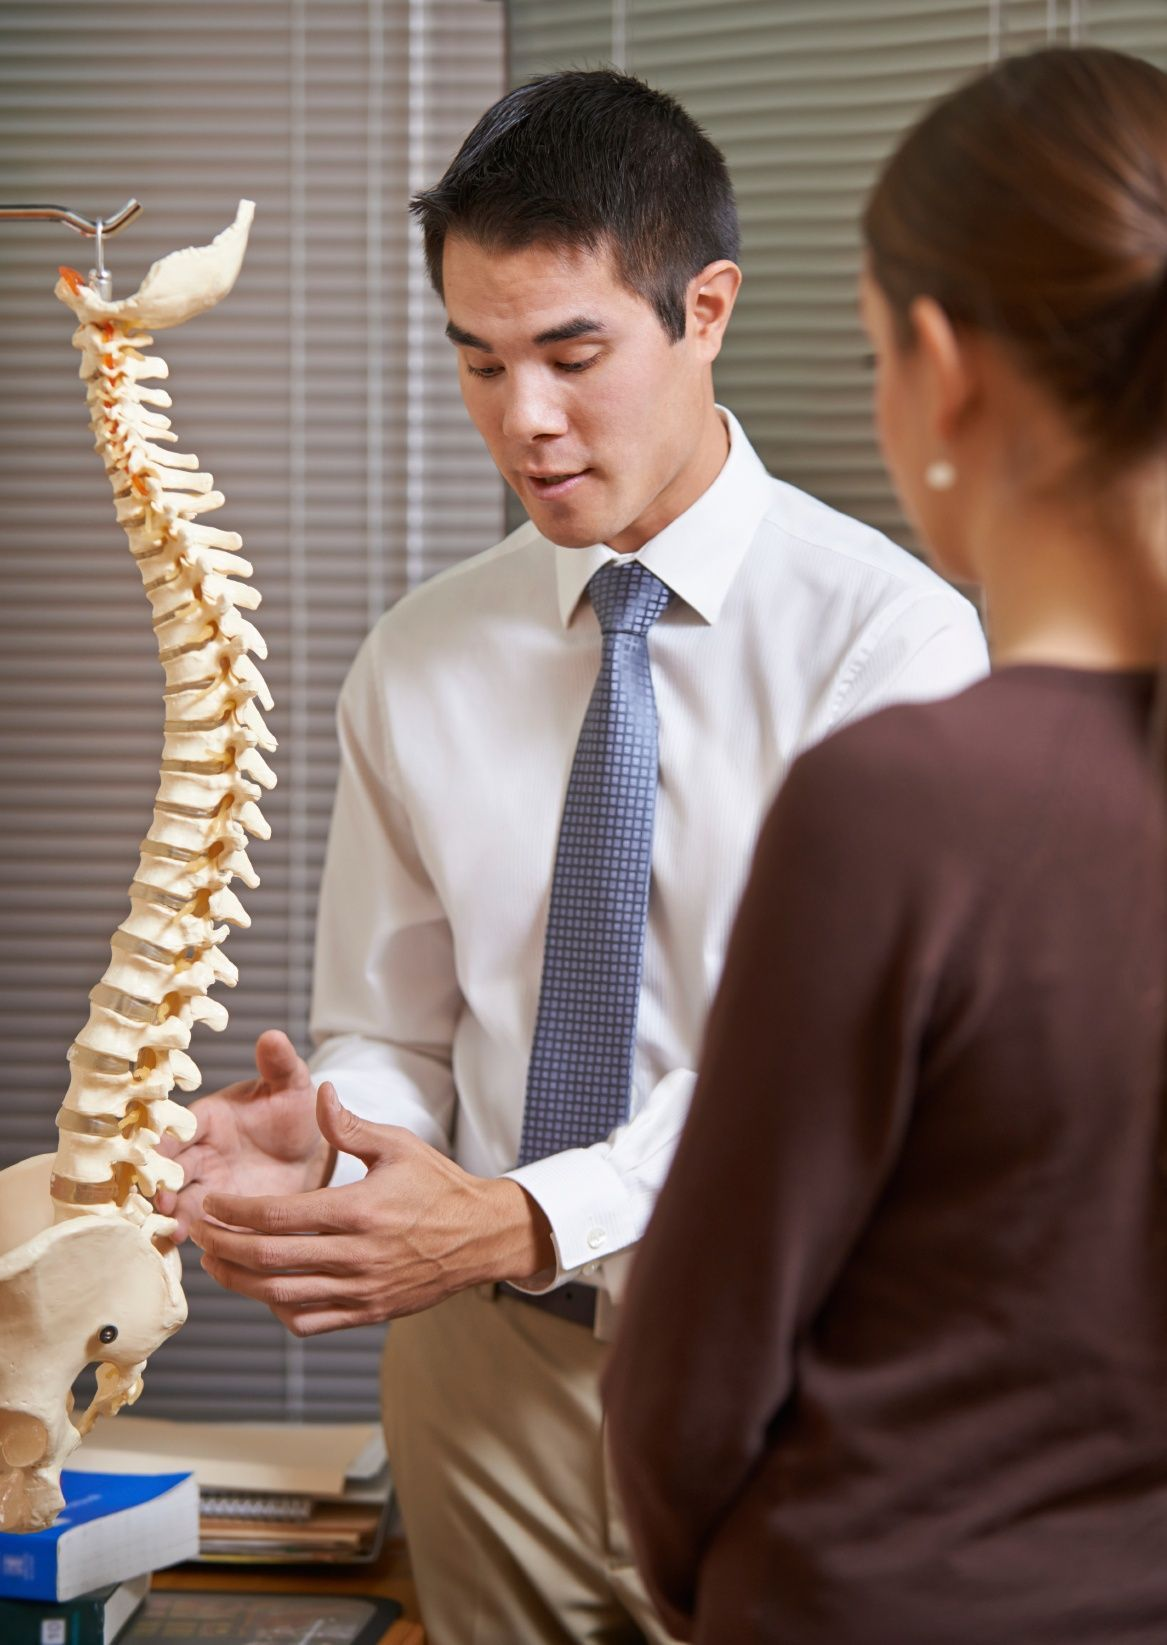 How to choose the best chiropractor for my care?